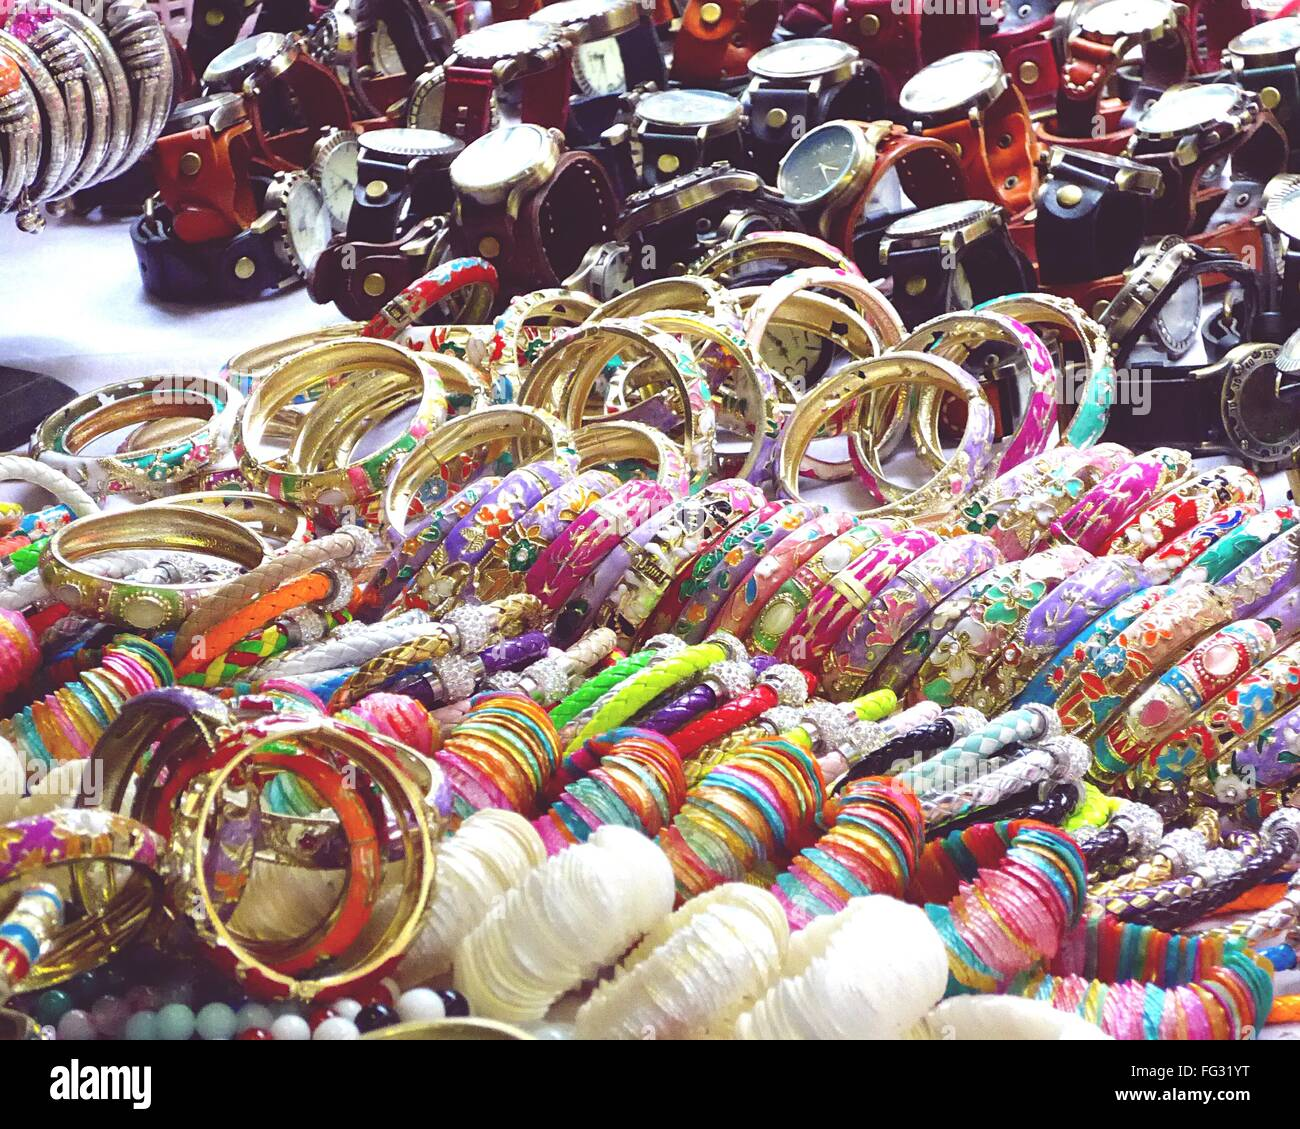 Colorful Bangles And Wristwatches For Sale At Market - Stock Image